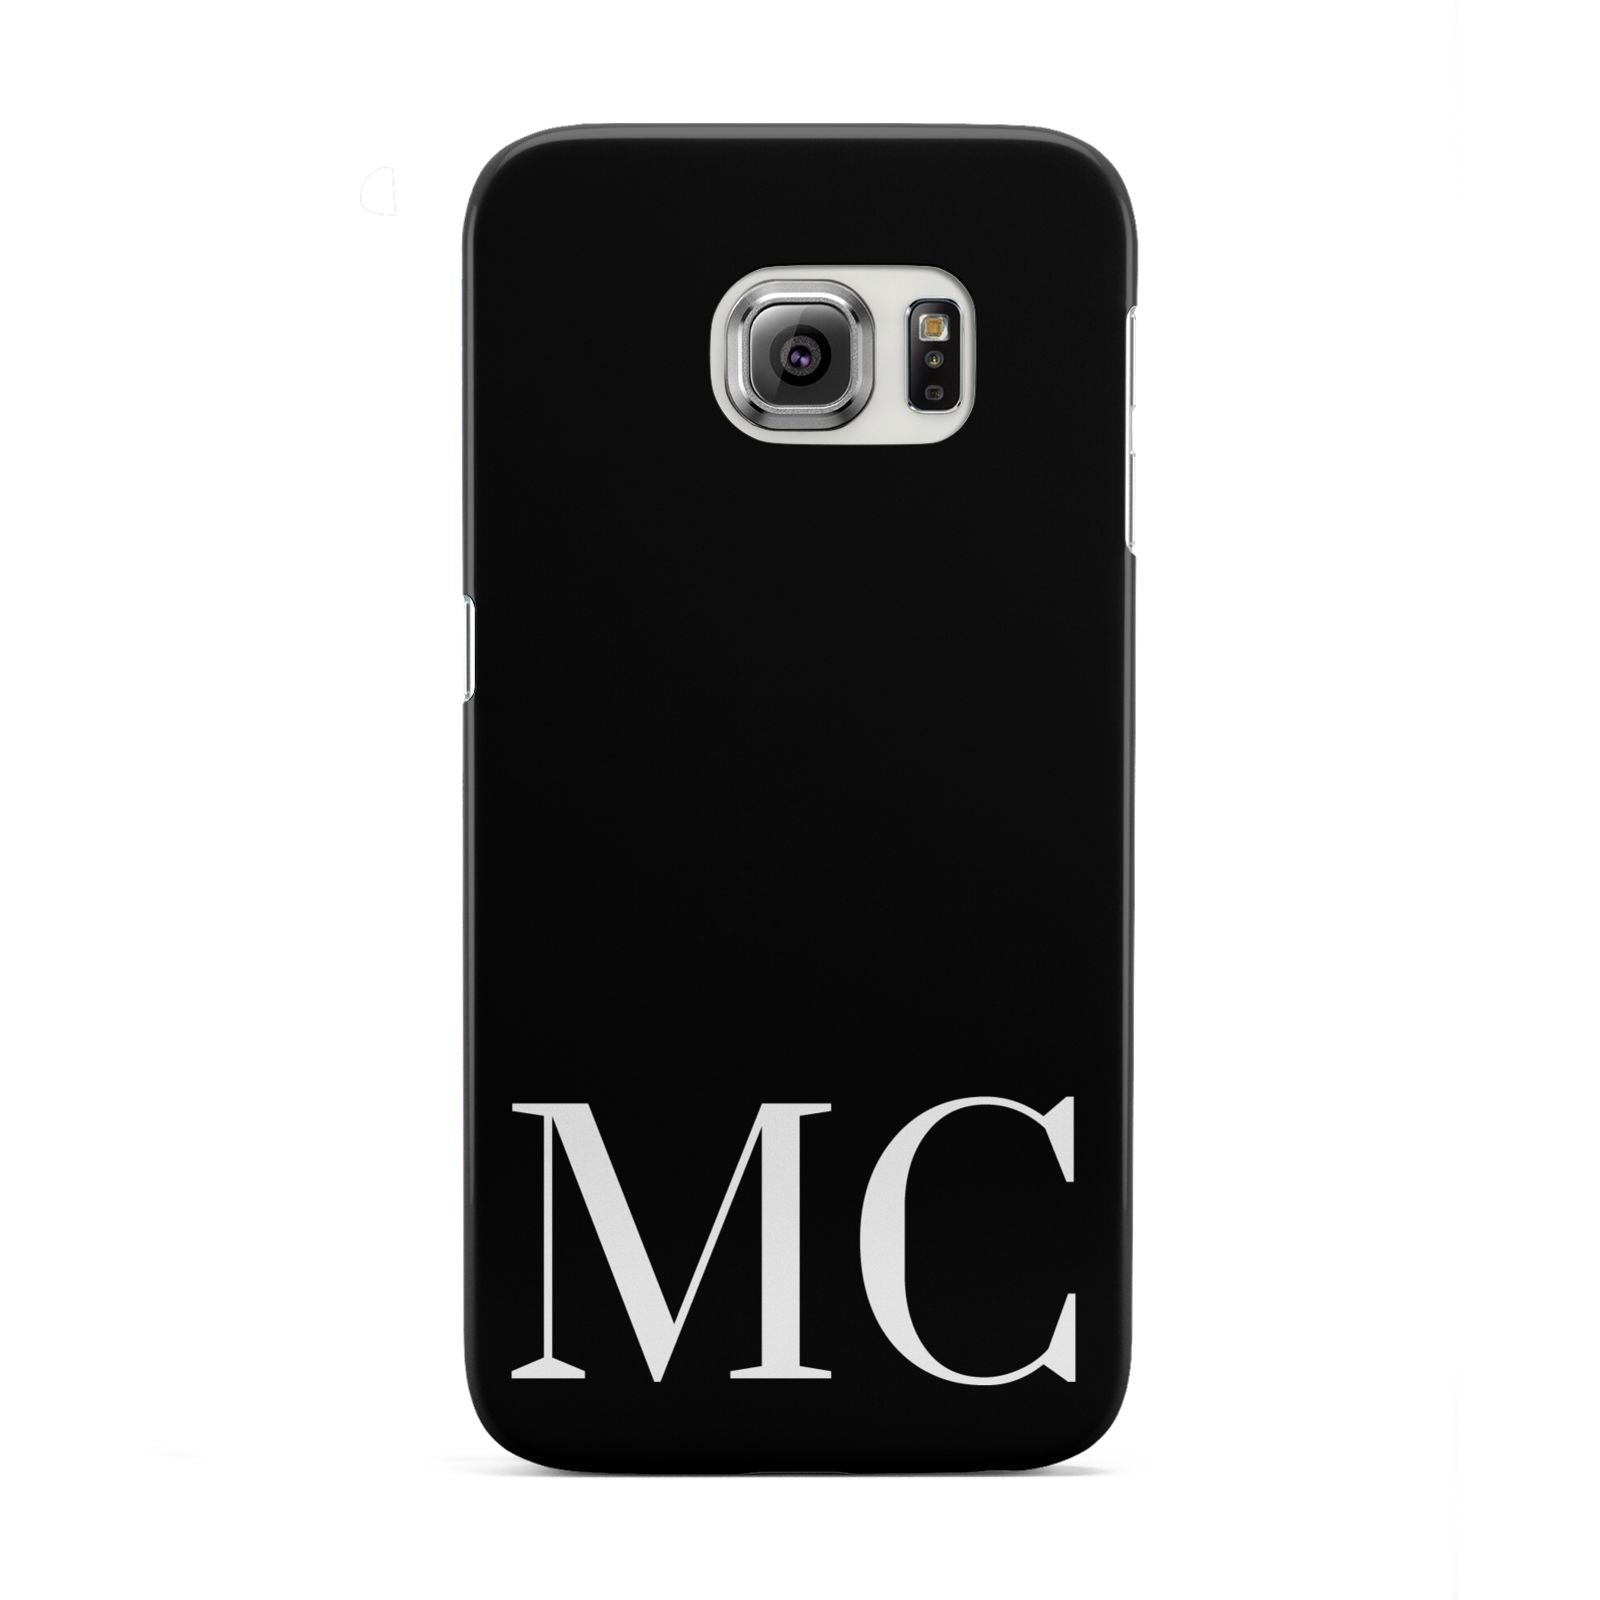 Initials Personalised 1 Samsung Galaxy S6 Edge Case